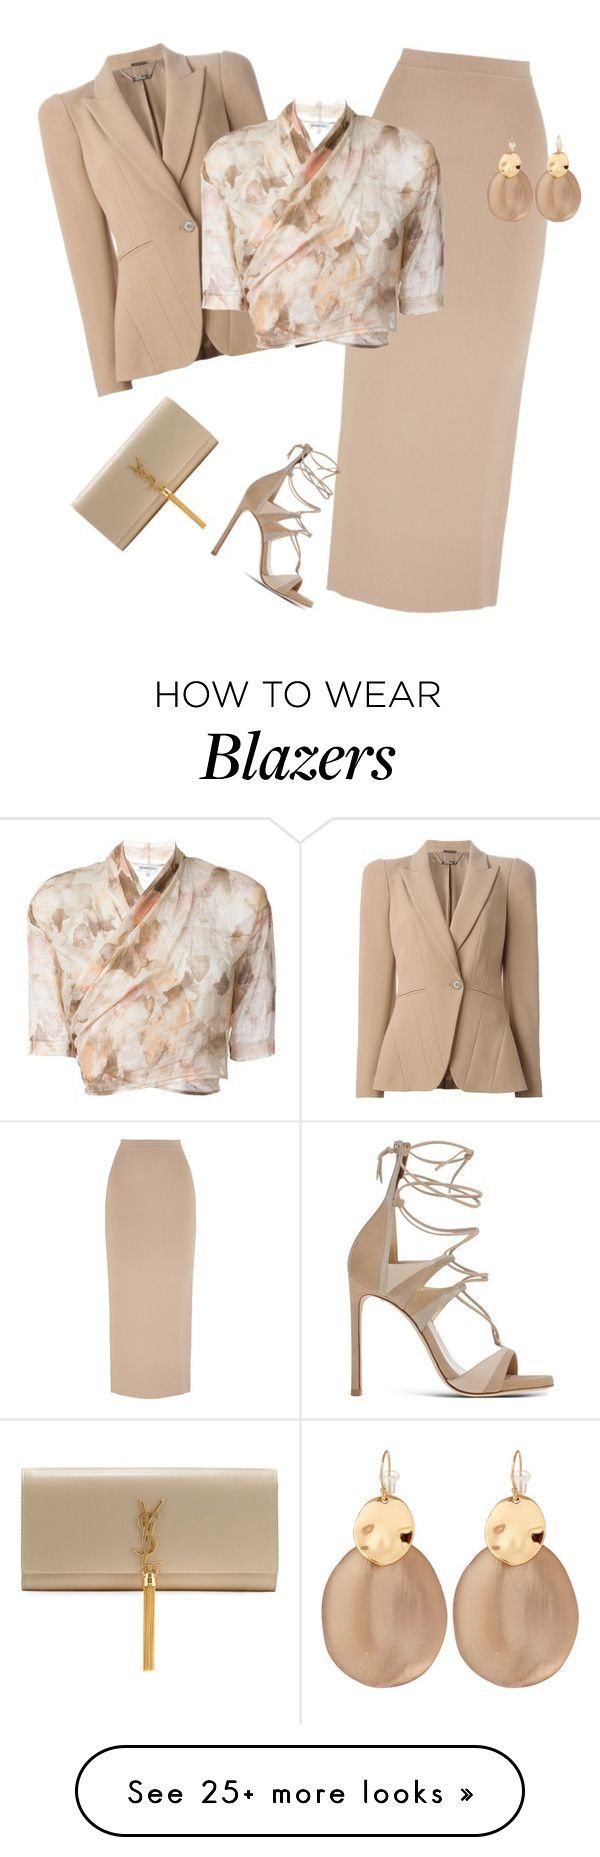 """""""outfit 4053"""" by natalyag on Polyvore featuring Alexander McQueen, Joseph, Stuart Weitzman, Romeo Gigli, Alexis Bittar and Yves Saint Laurent"""